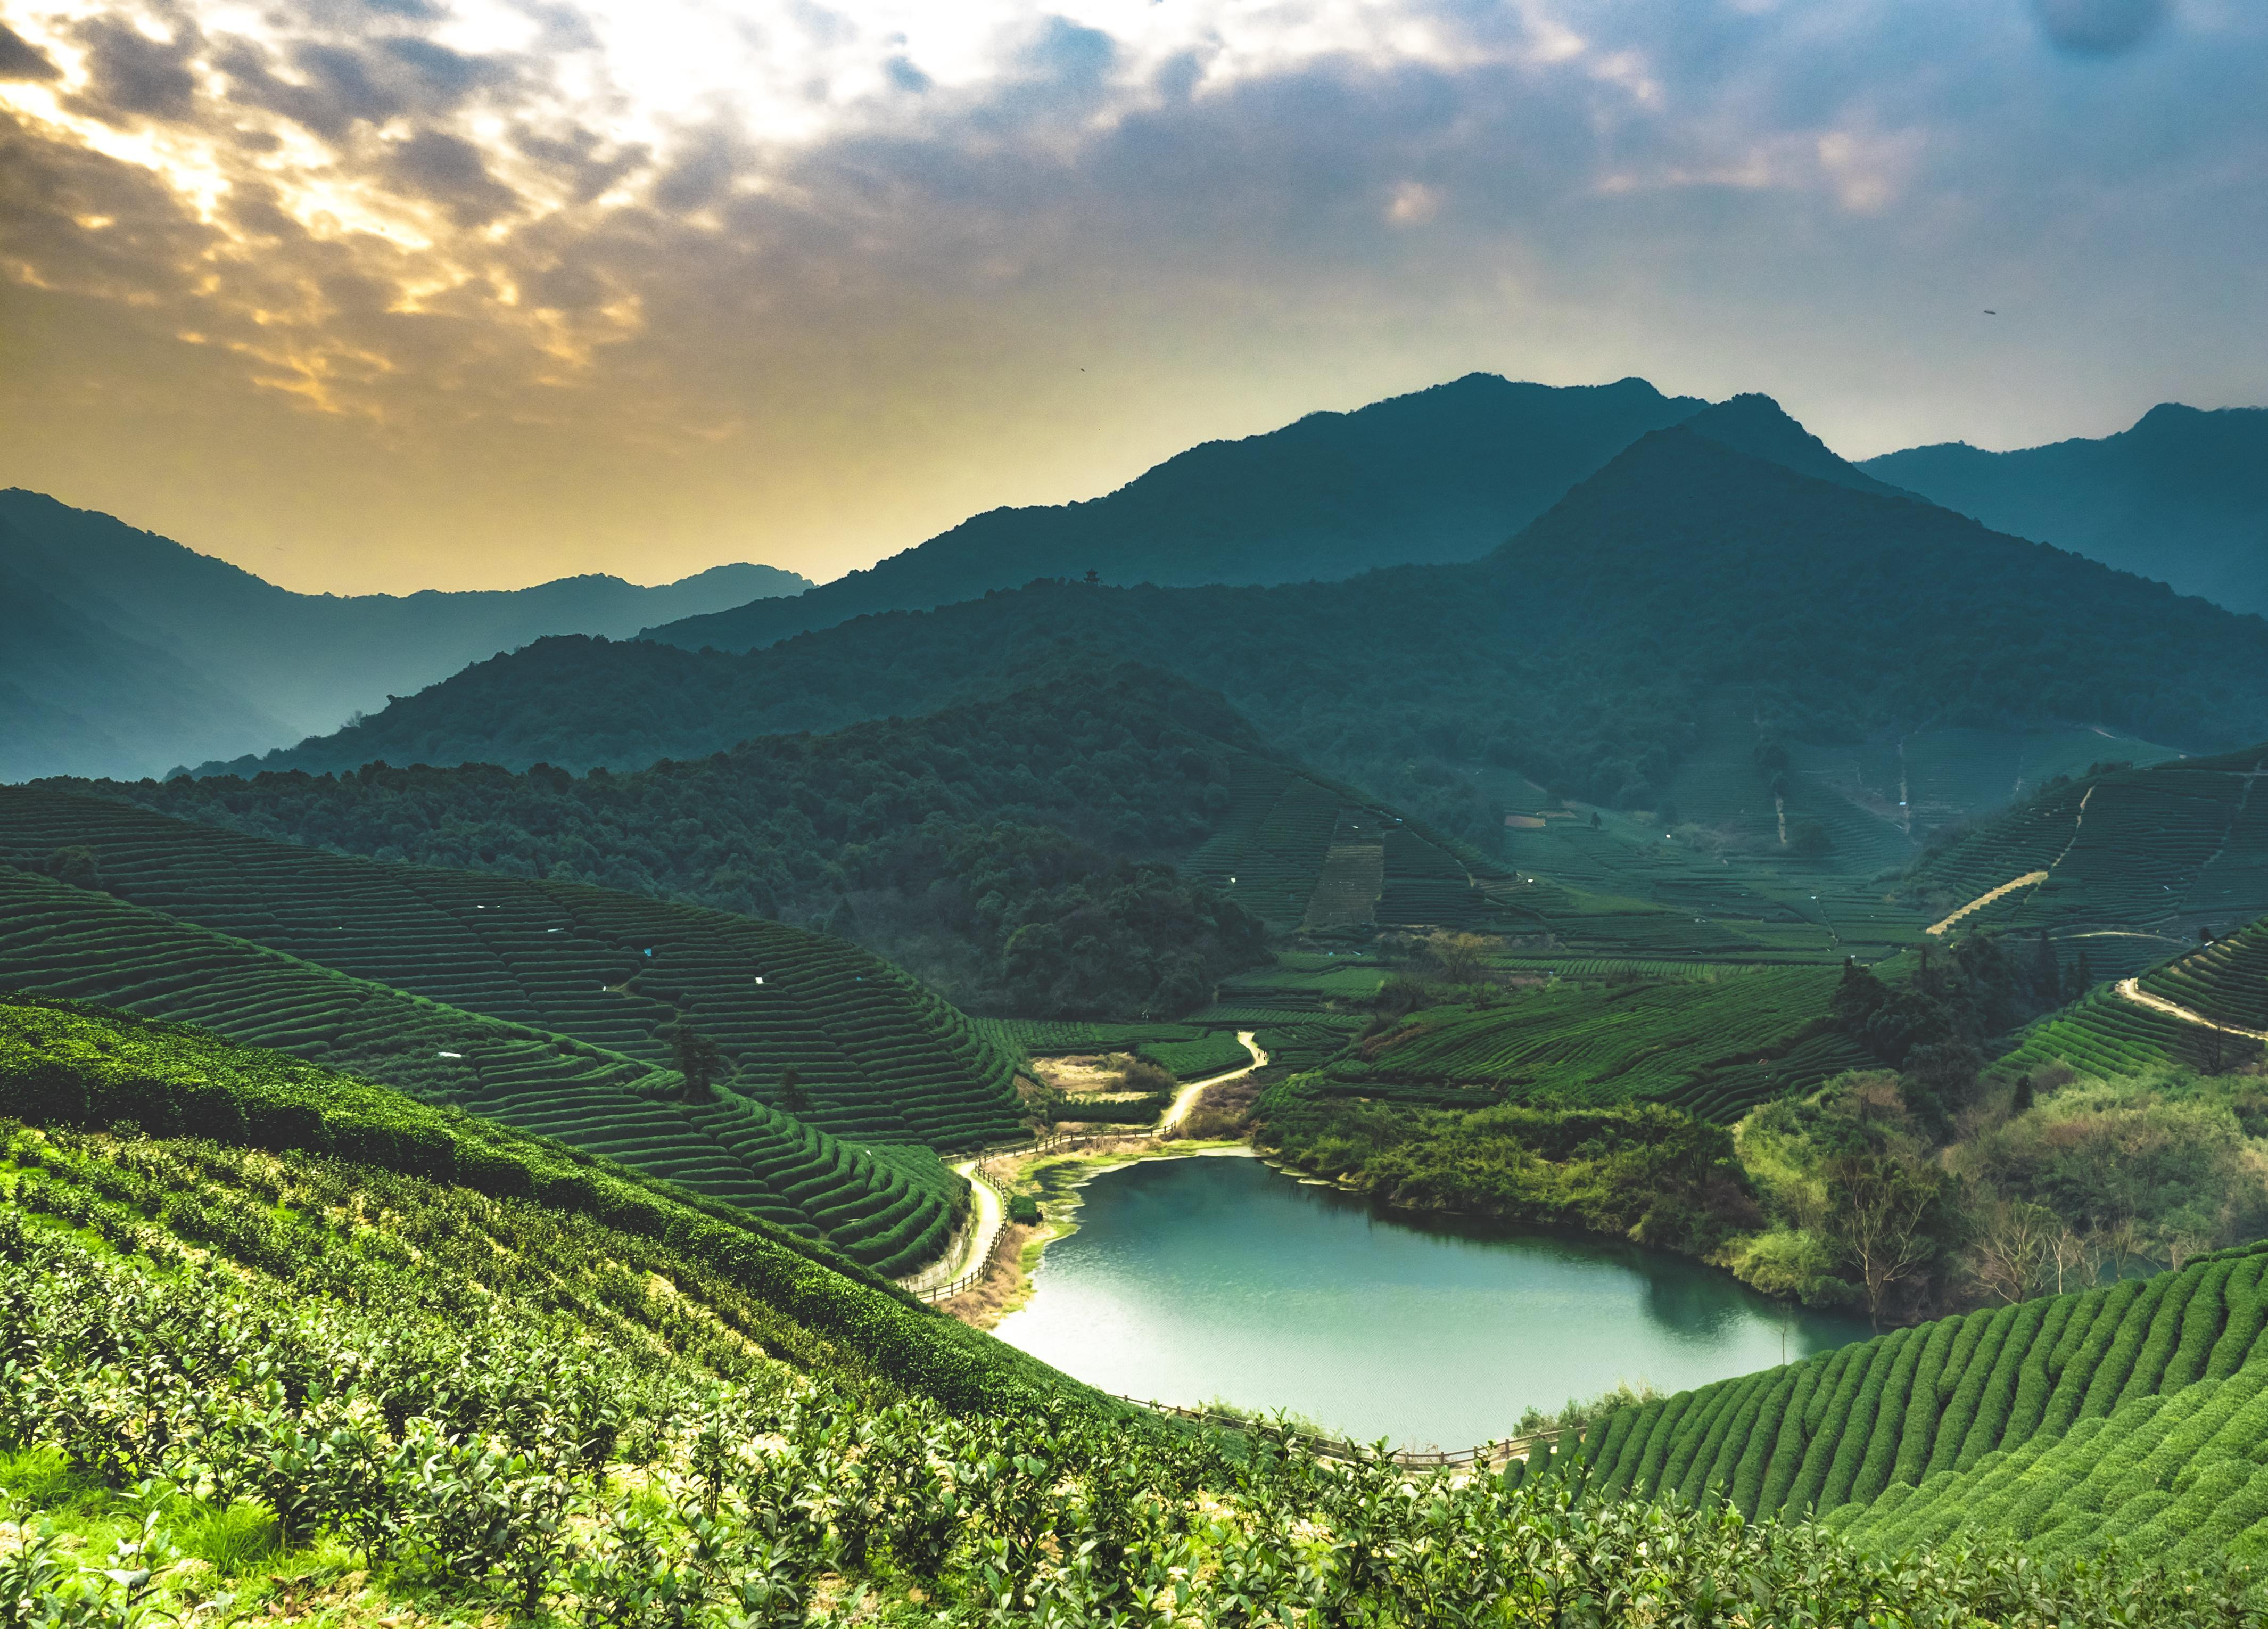 How to Spend 2 Days in Hangzhou